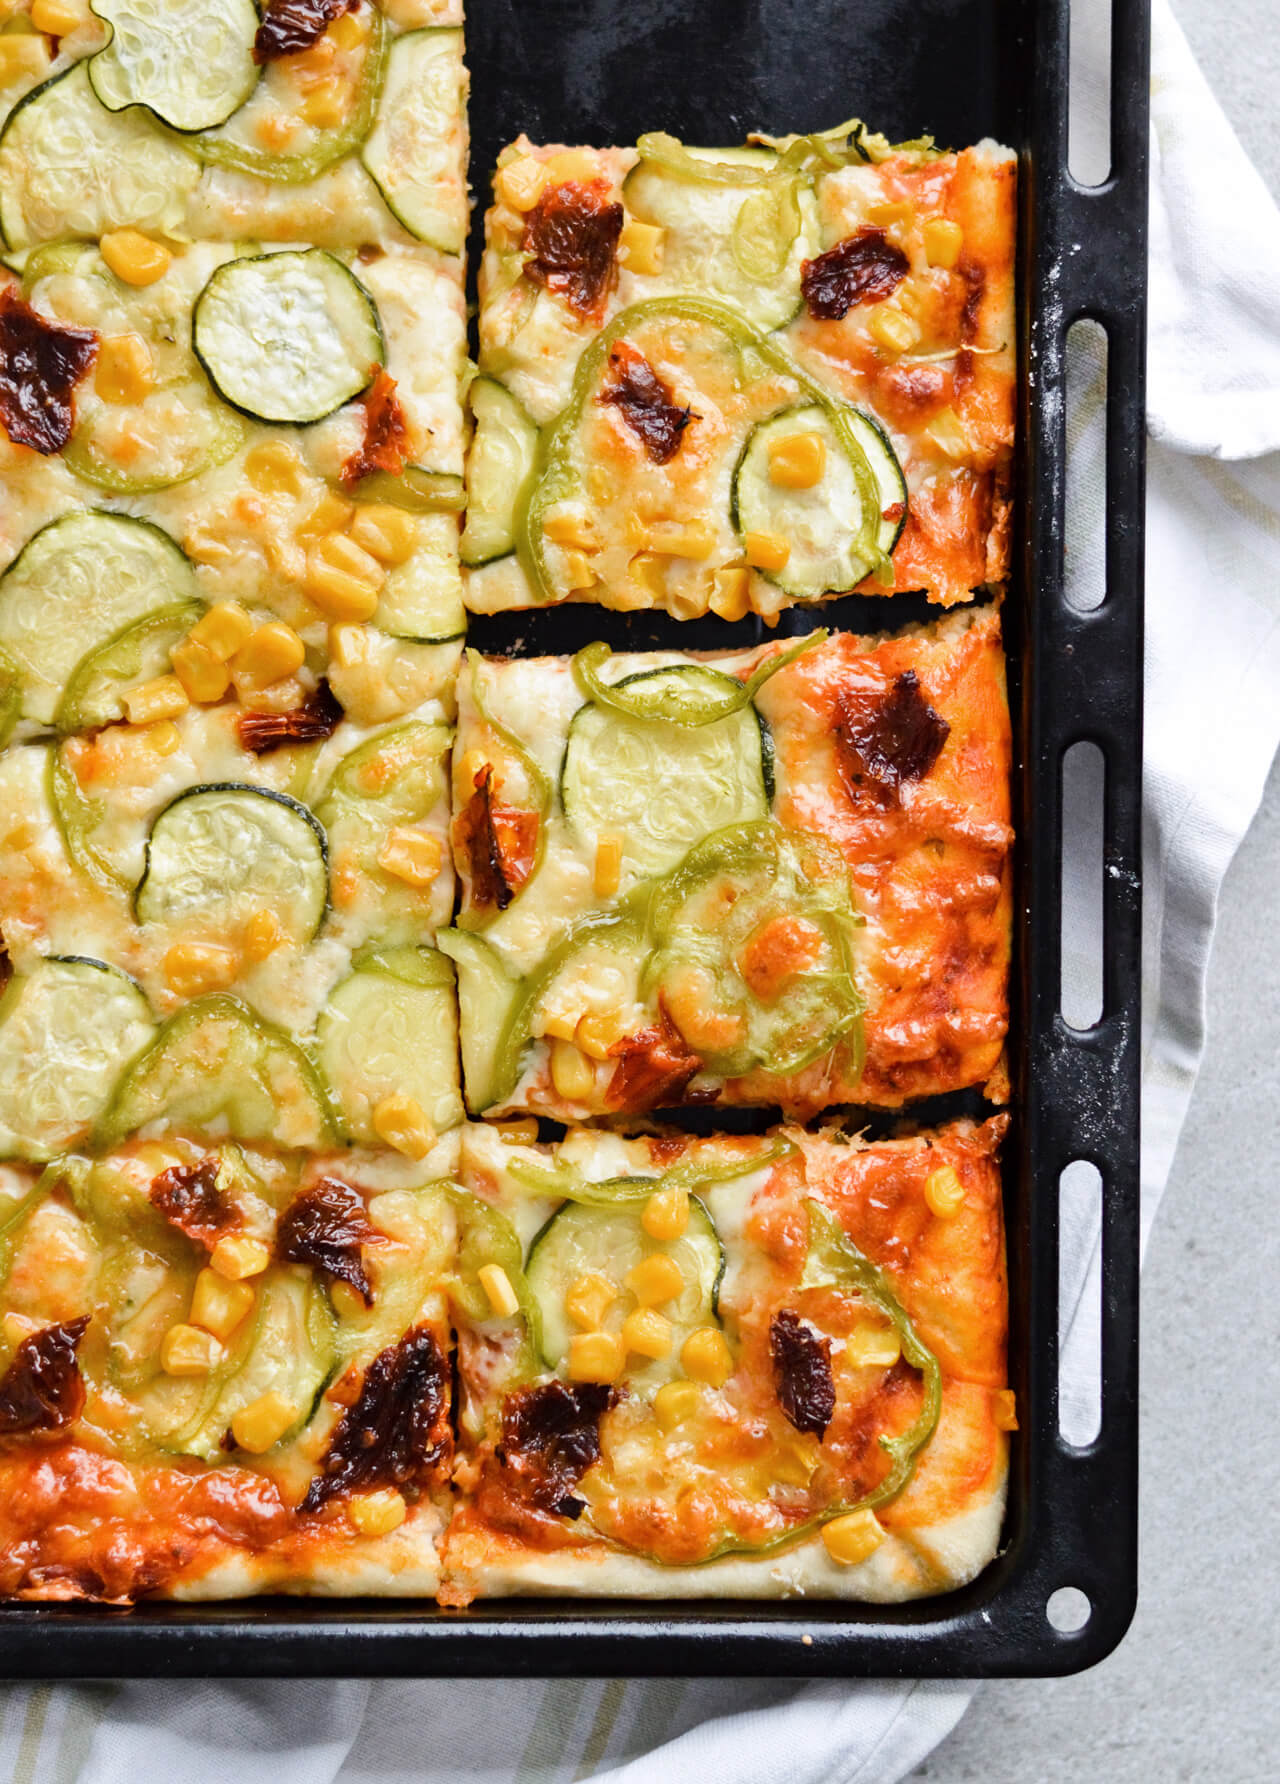 Best vegetable sheet pizza! Made with homemade pizza dough and quick pizza sauce, topped with zucchini, peppers, corn and much more! So easy to make, great for dinner and a crowd. | sugarsalted.com